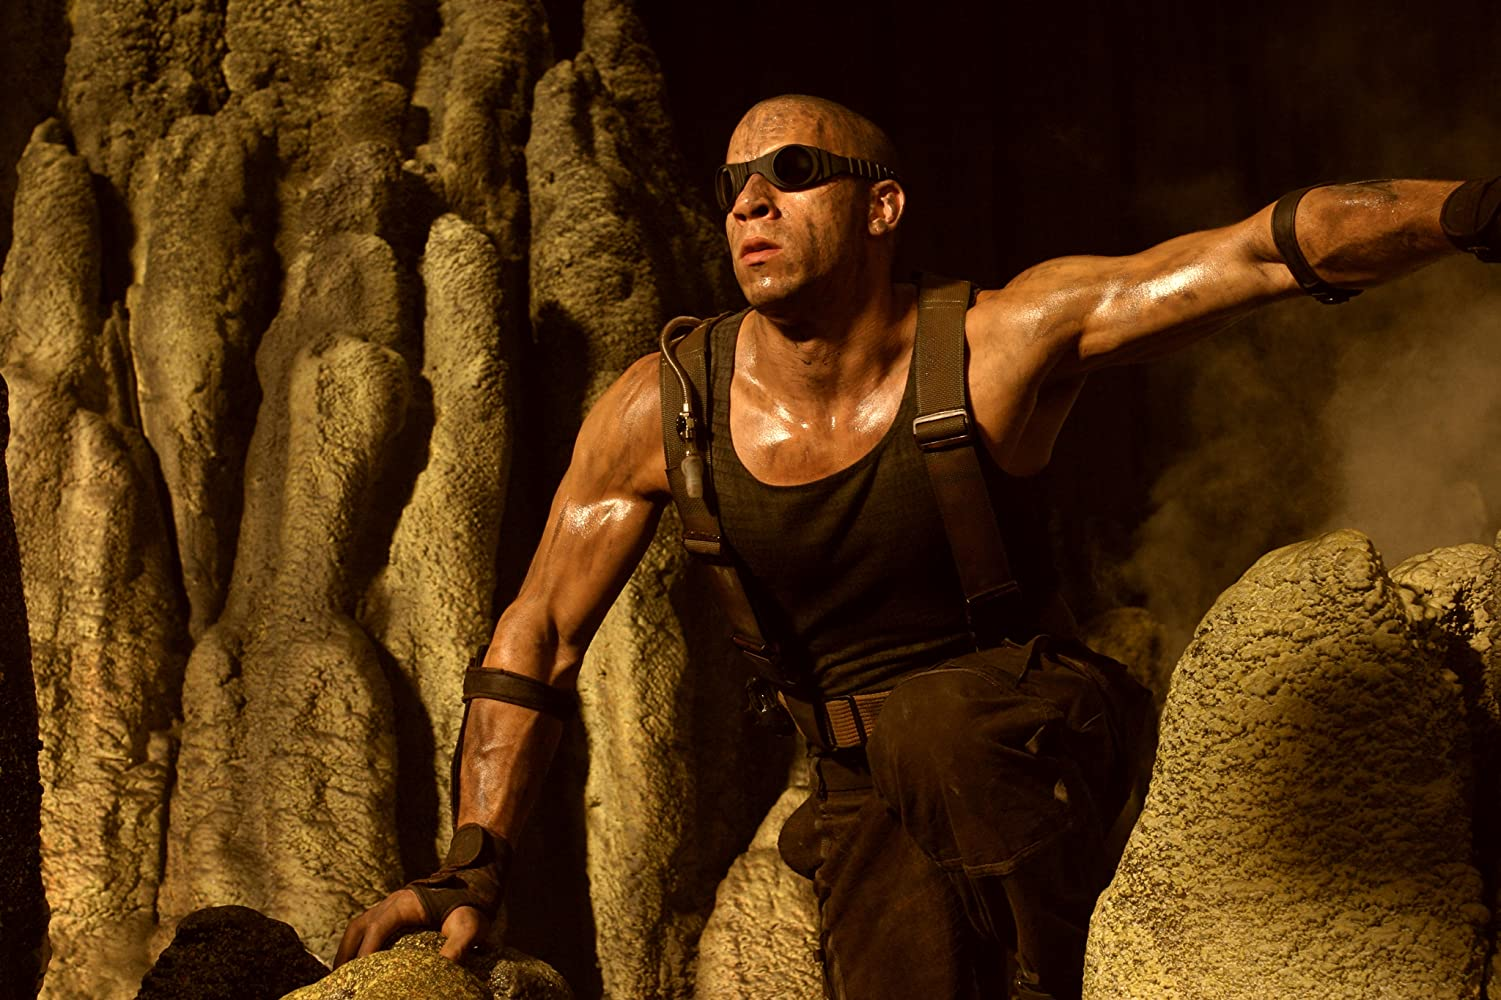 Vin Diesel in The Chronicles of Riddick (2004)